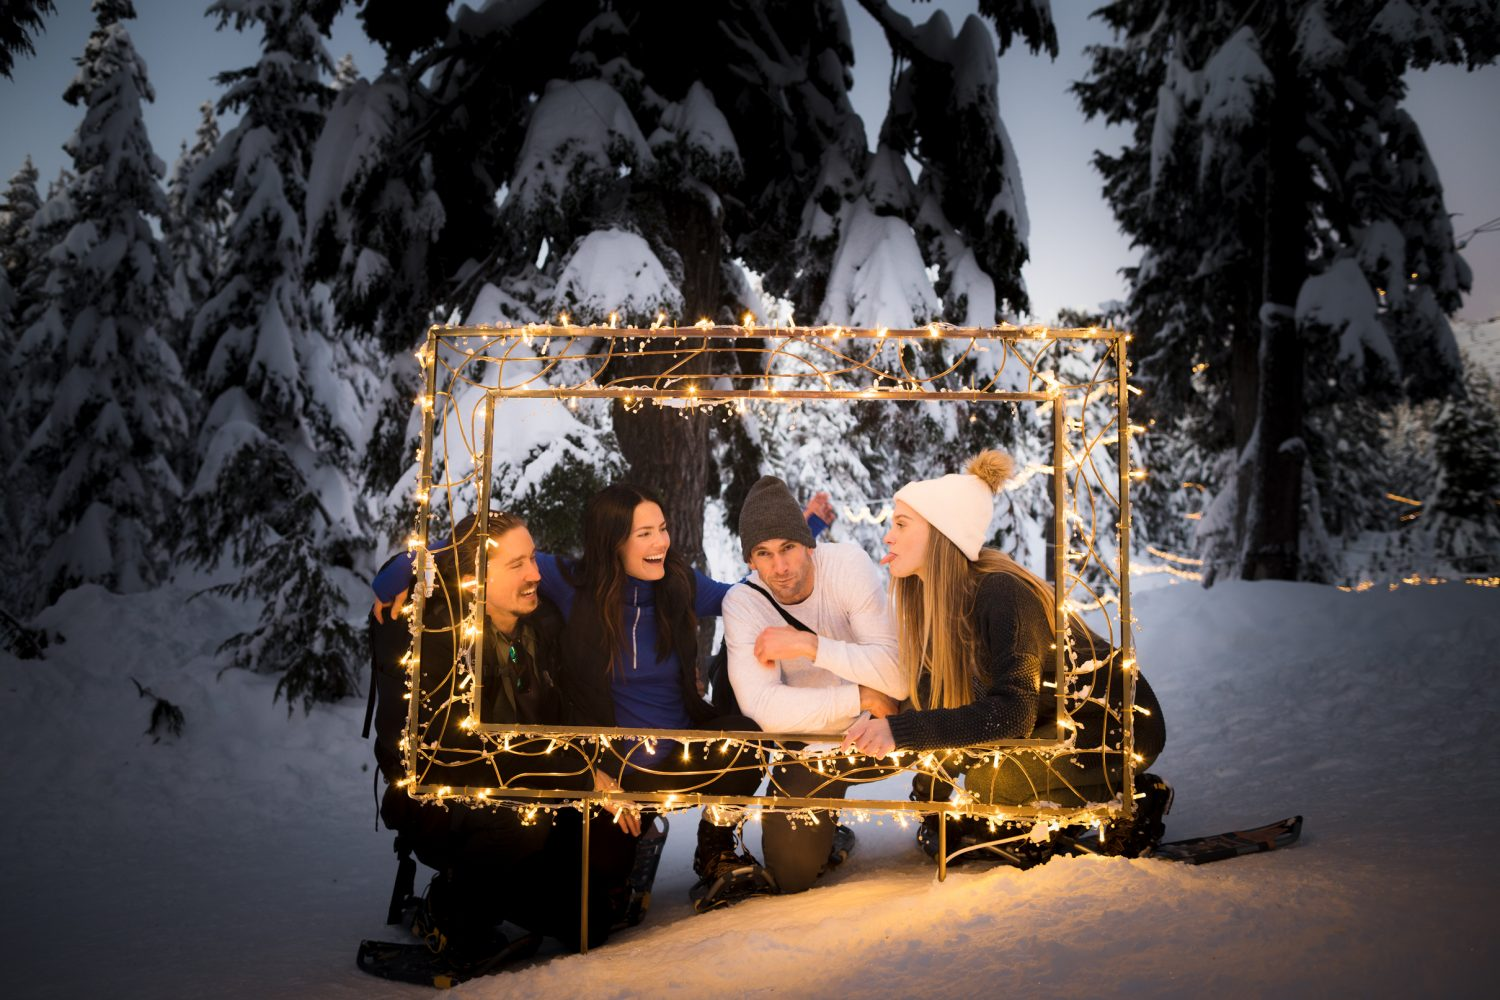 Grouse Mountain - How to spend Holidays in Vancouver